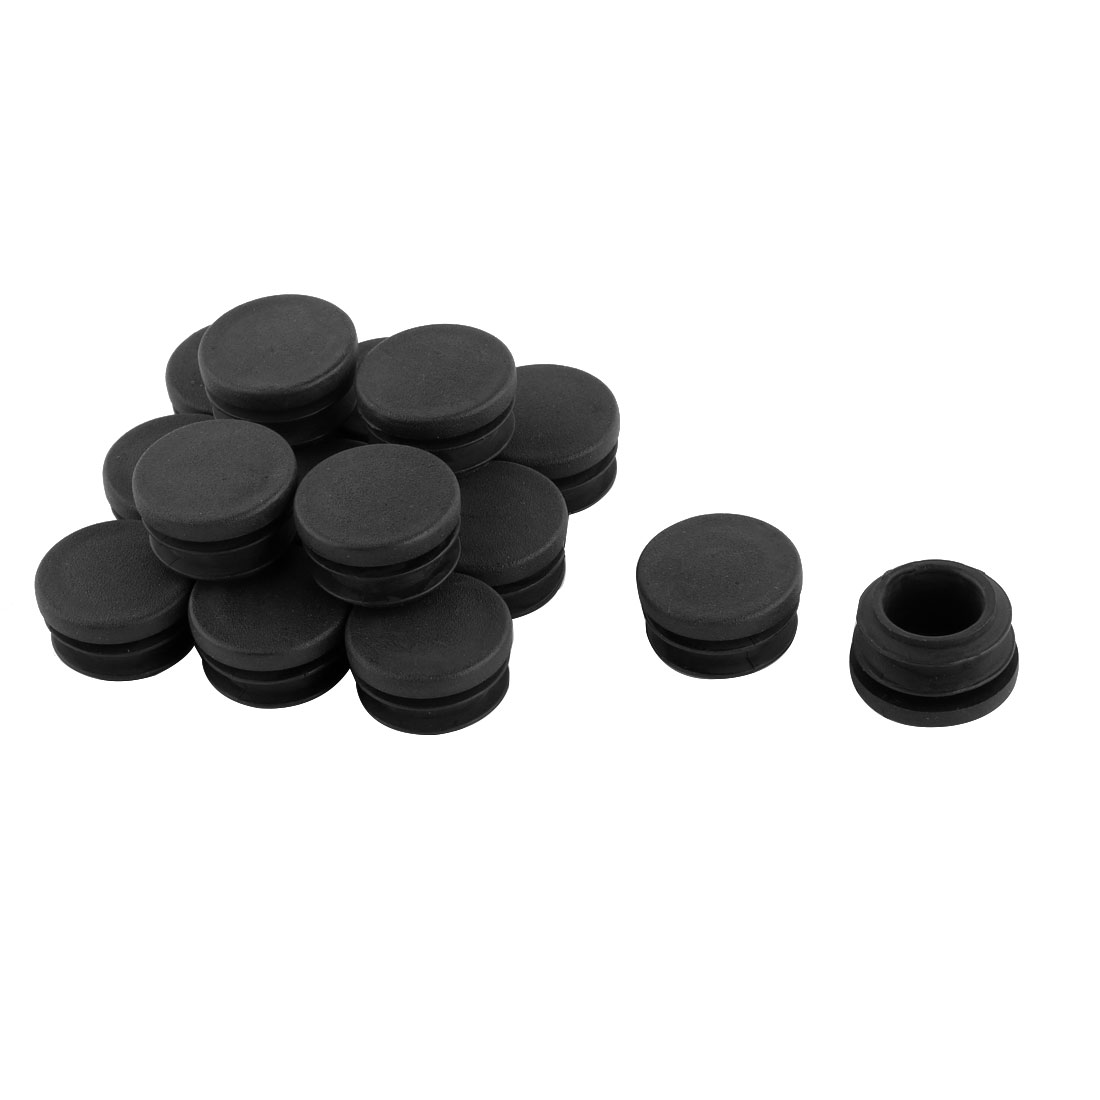 15 Pcs Round Plastic Black Blanking End Cap Caps Tube Pipe Inserts Bung